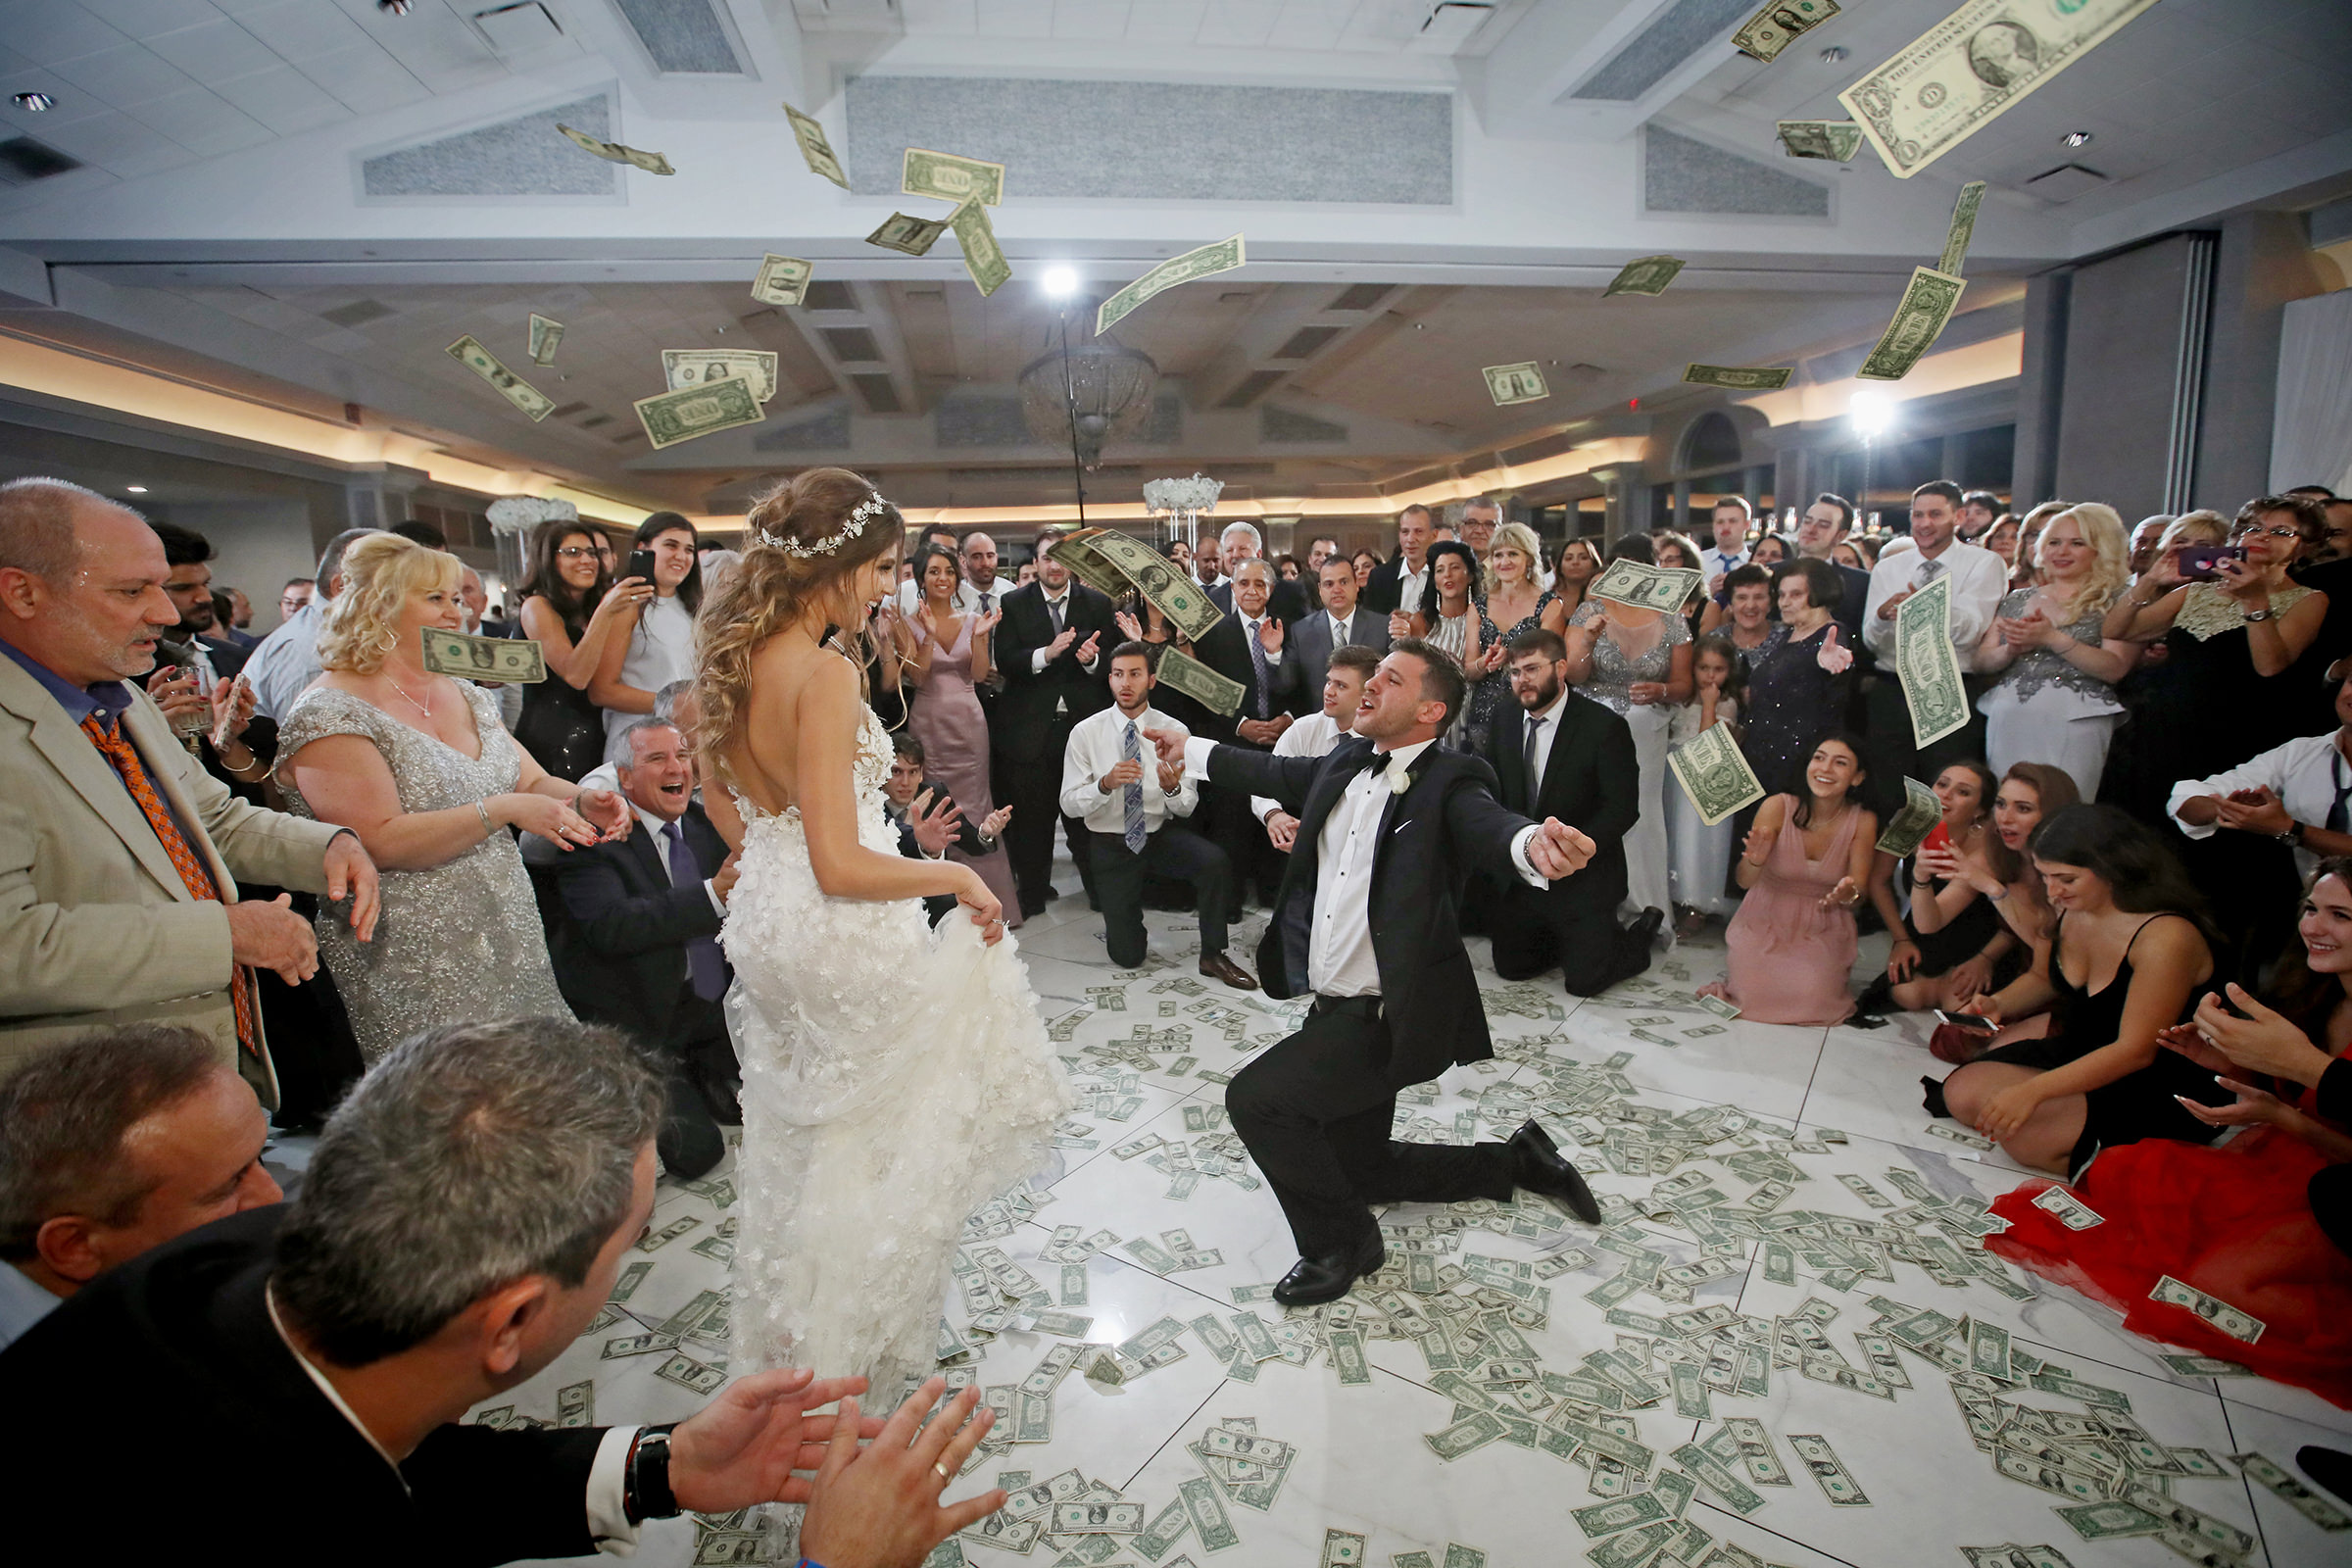 Groom and bride money dance during reception - photo by Kenny Kim Photography